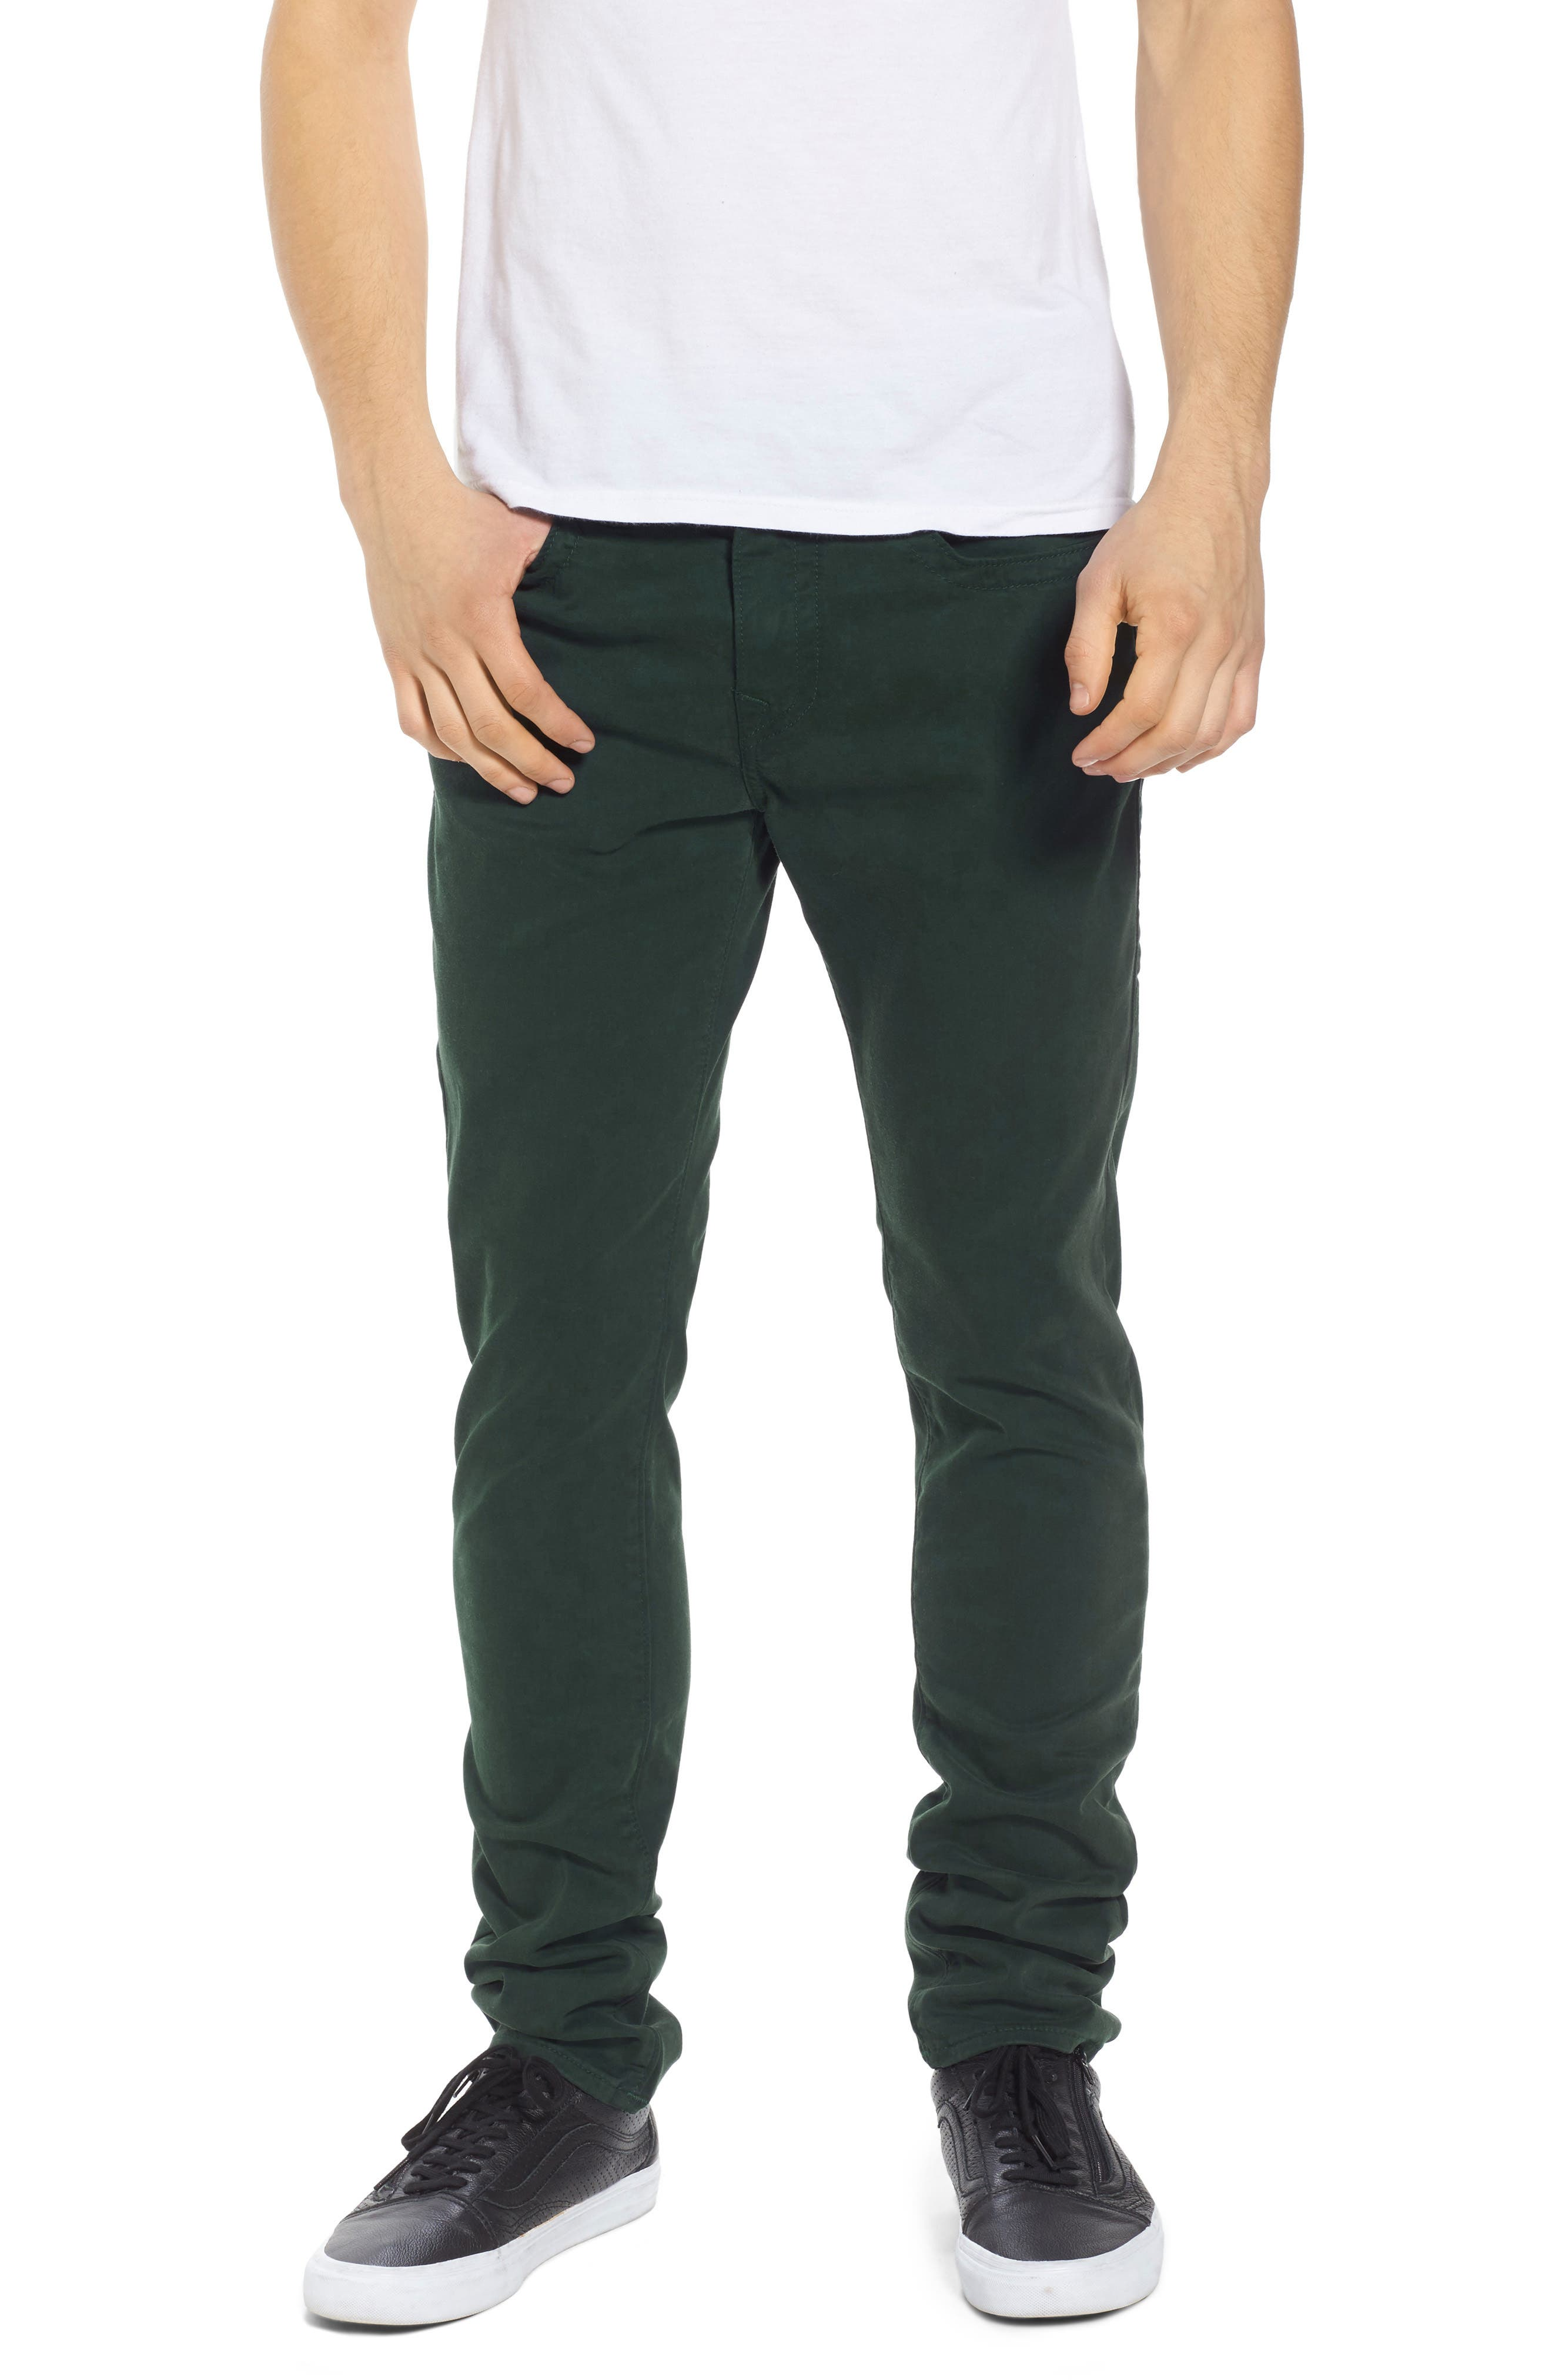 Rocco Skinny Fit Jeans,                             Main thumbnail 1, color,                             300